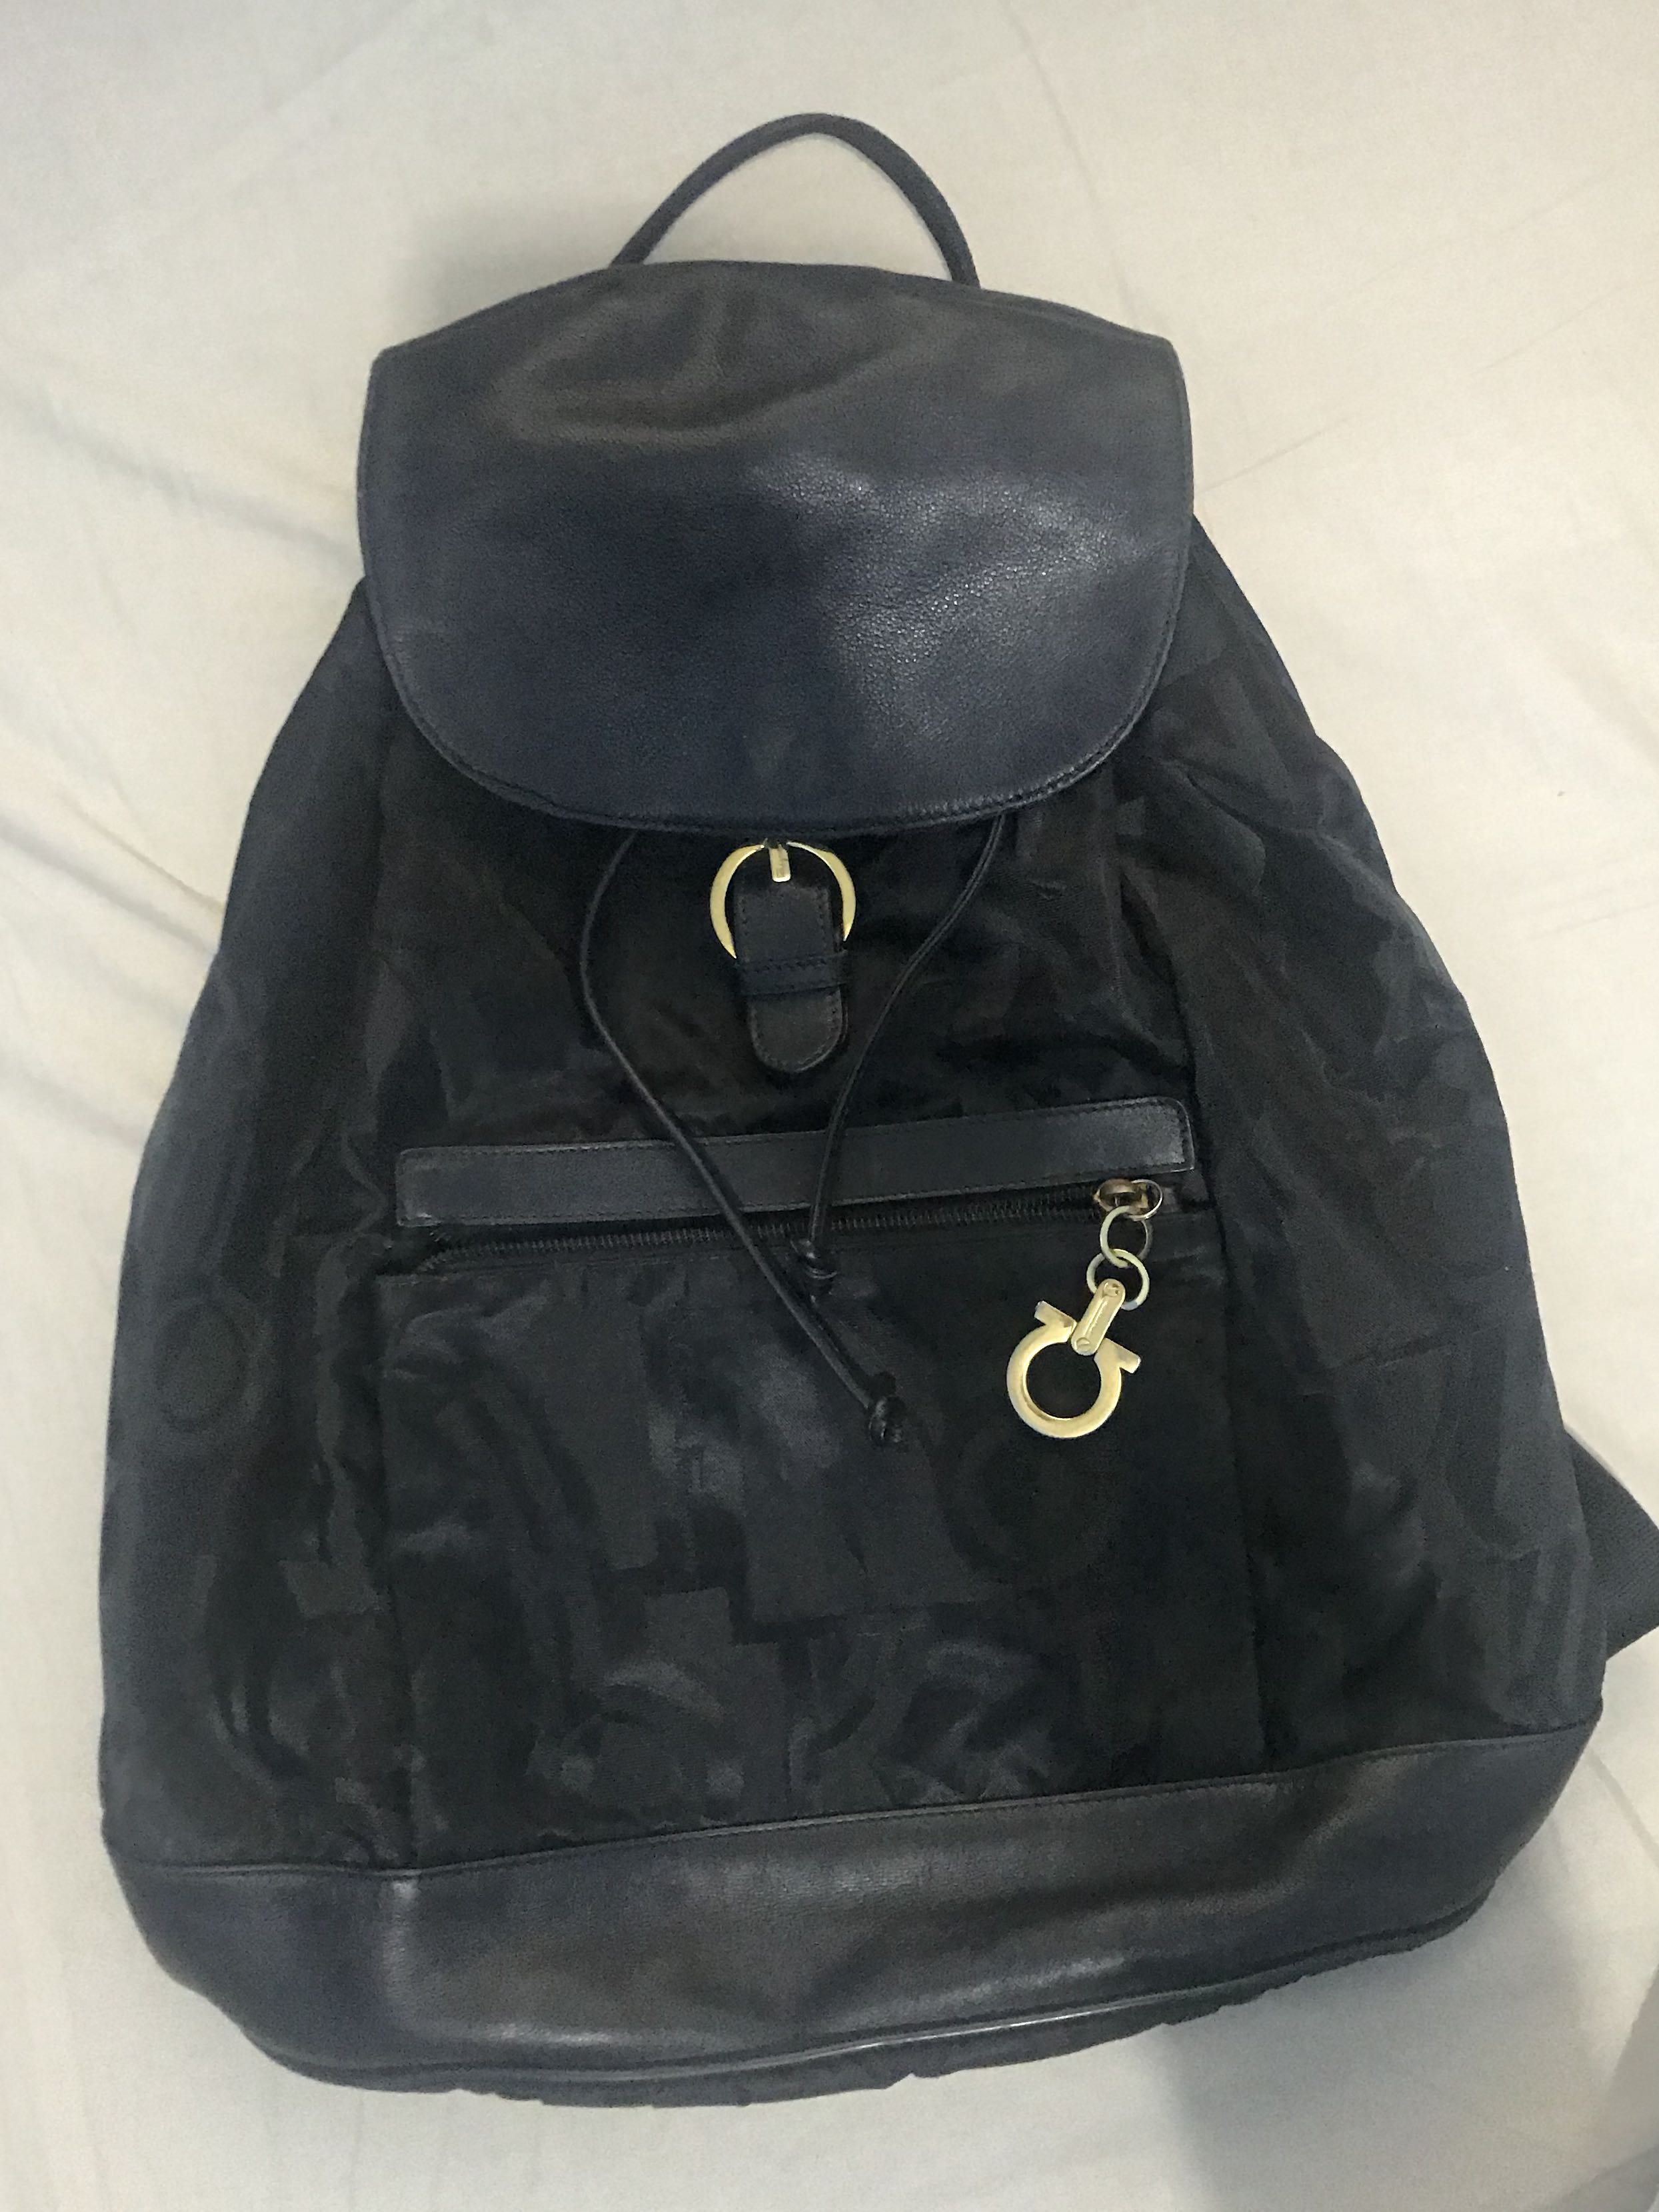 Authentic Salvatore Ferragamo Nylon Leather Backpack fbadaacaf9dae